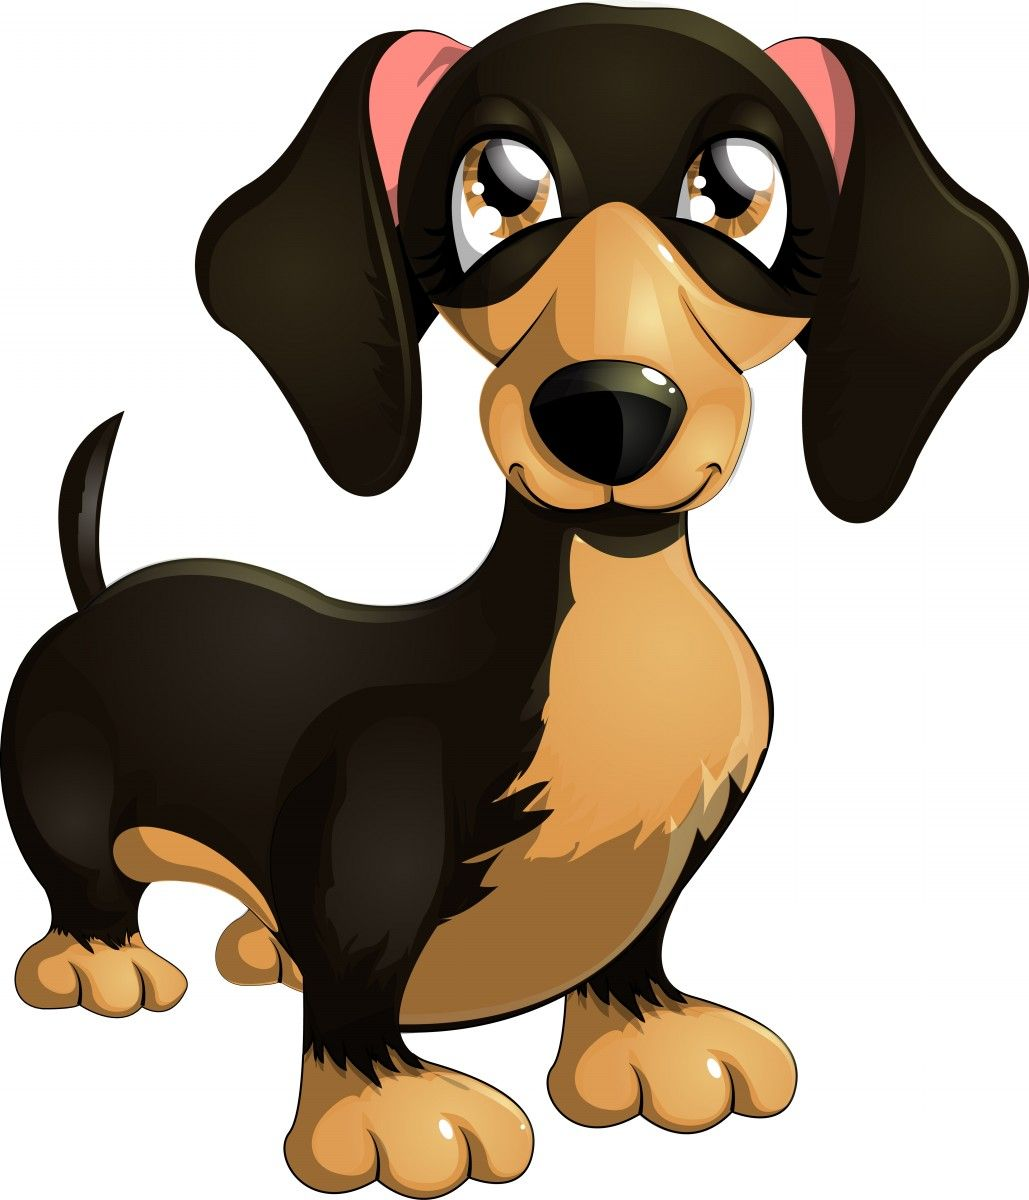 Cute Animals Cartoon Pictures Free Download • Elsoar   Animal clipart free, Dog  clip art, Cartoon pics